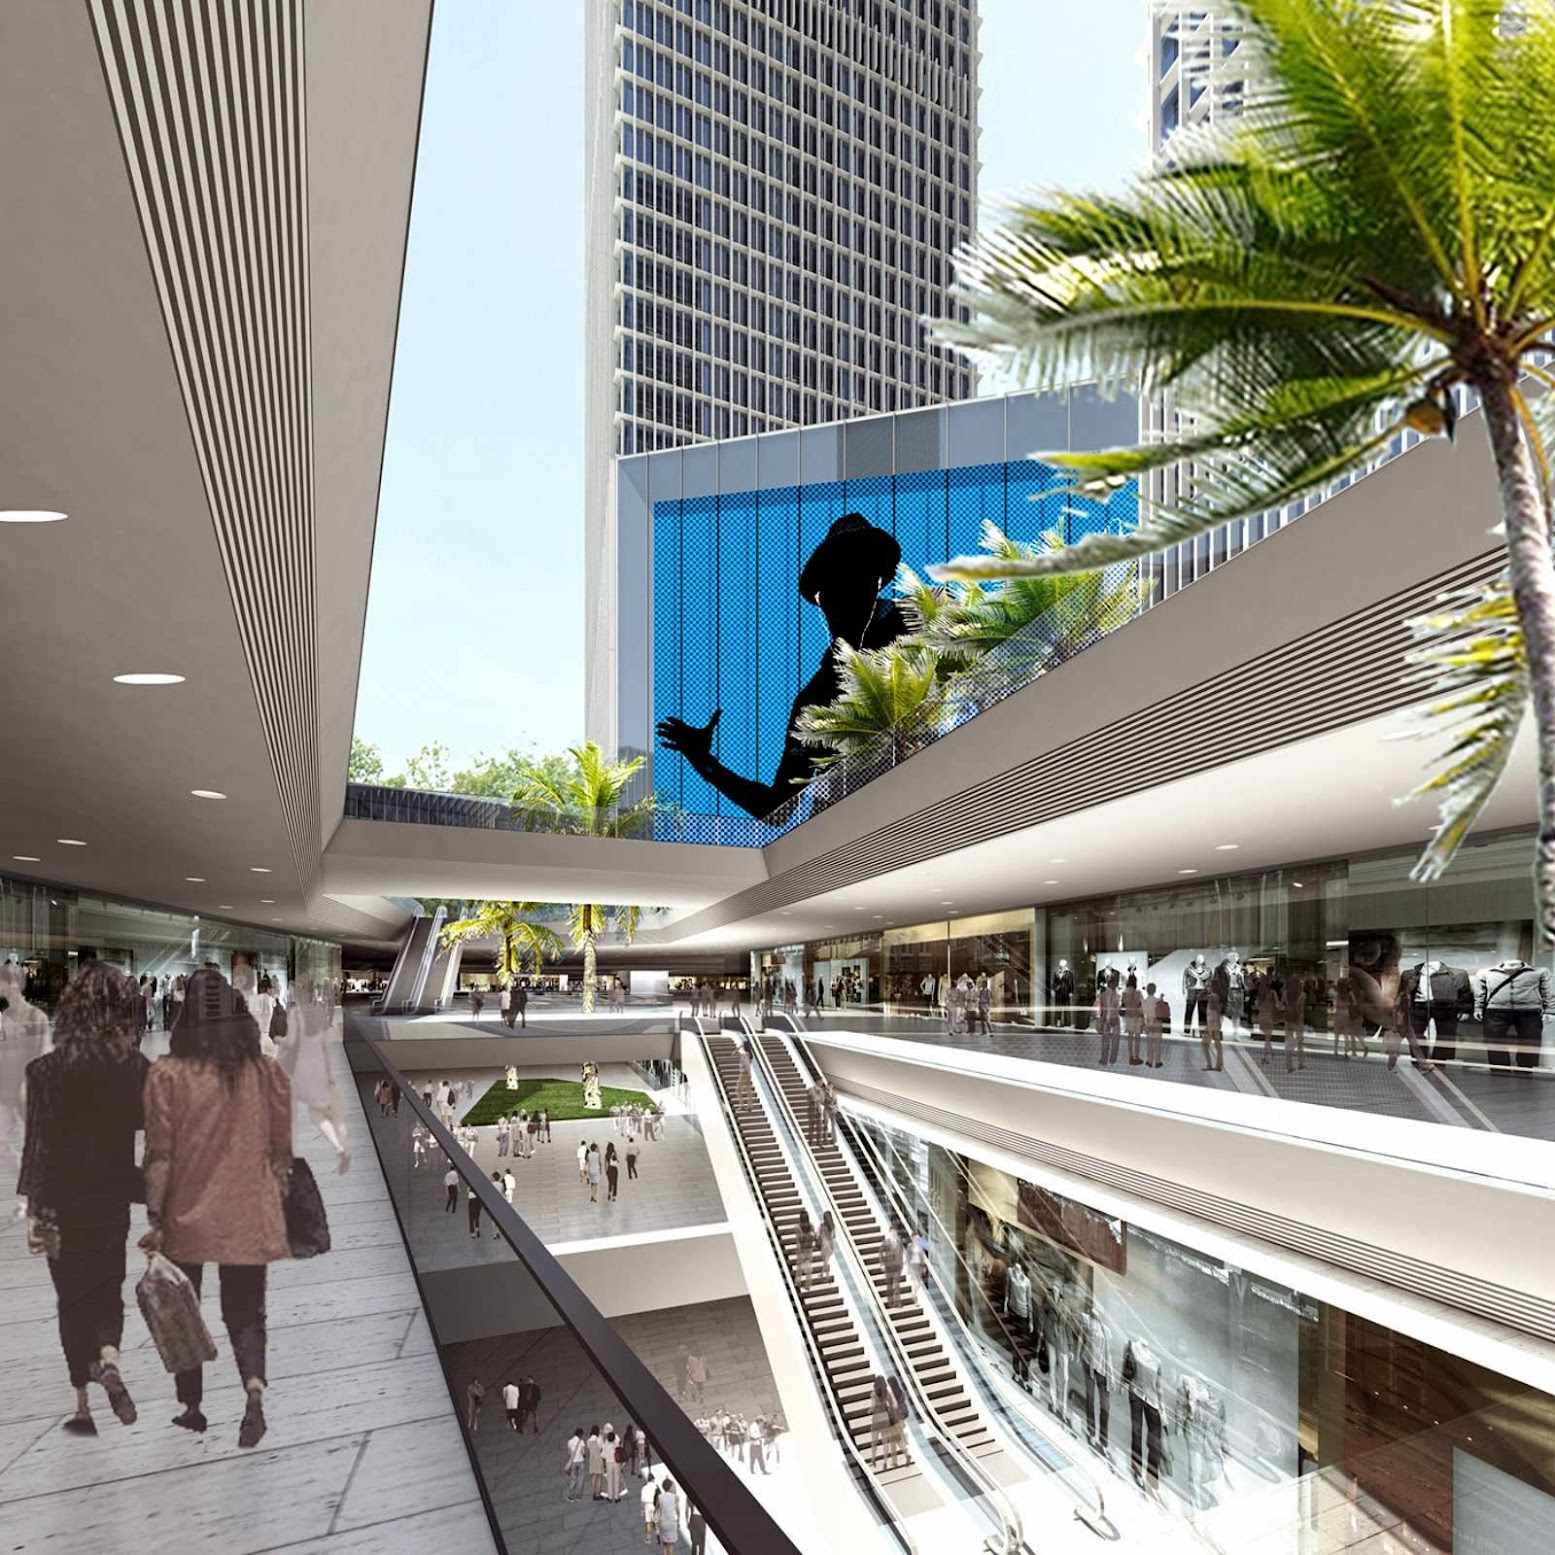 New urban development in Shenzhen by gmp architekten